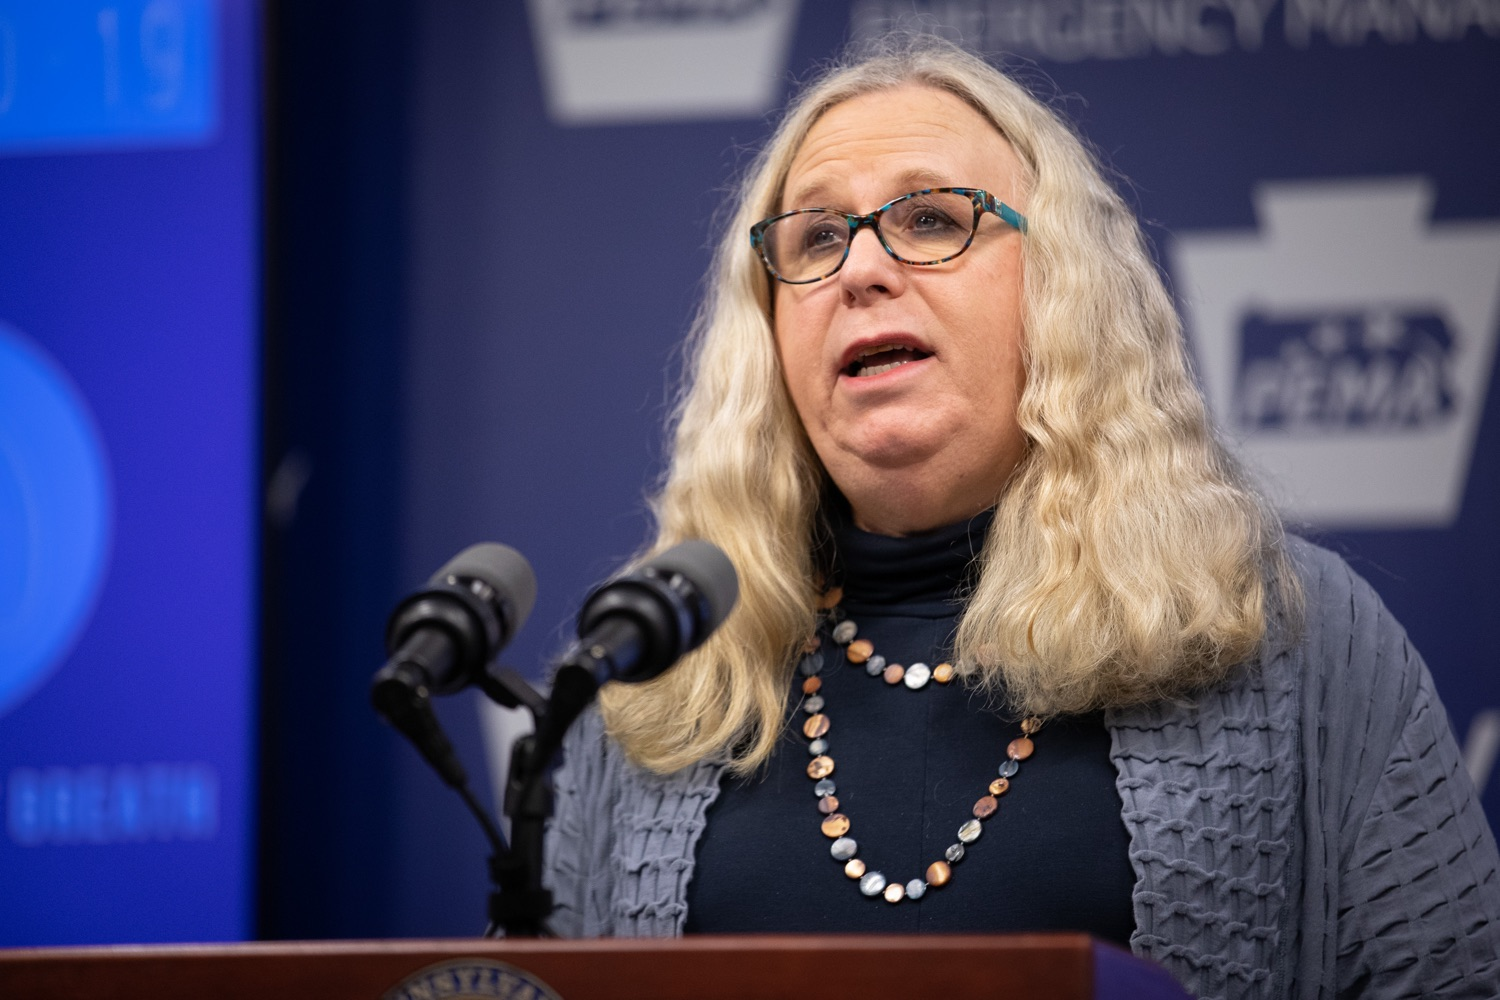 "<a href=""https://filesource.wostreaming.net/commonwealthofpa/photo/17894_doh_covid19_update_dz_0007.jpg"" target=""_blank"">⇣ Download Photo<br></a>Secretary of Health Dr. Rachel Levine speaking at the virtual press conference.  The Pennsylvania Department of Health today confirmed as of 12:00 a.m., March 19, that there are 52 additional positive cases of COVID-19 reported, bringing the statewide total to 185. The state also reported one death, an adult from Northampton County. All people are either in isolation at home or being treated at the hospital. Harrisburg, PA- March 19, 2020"